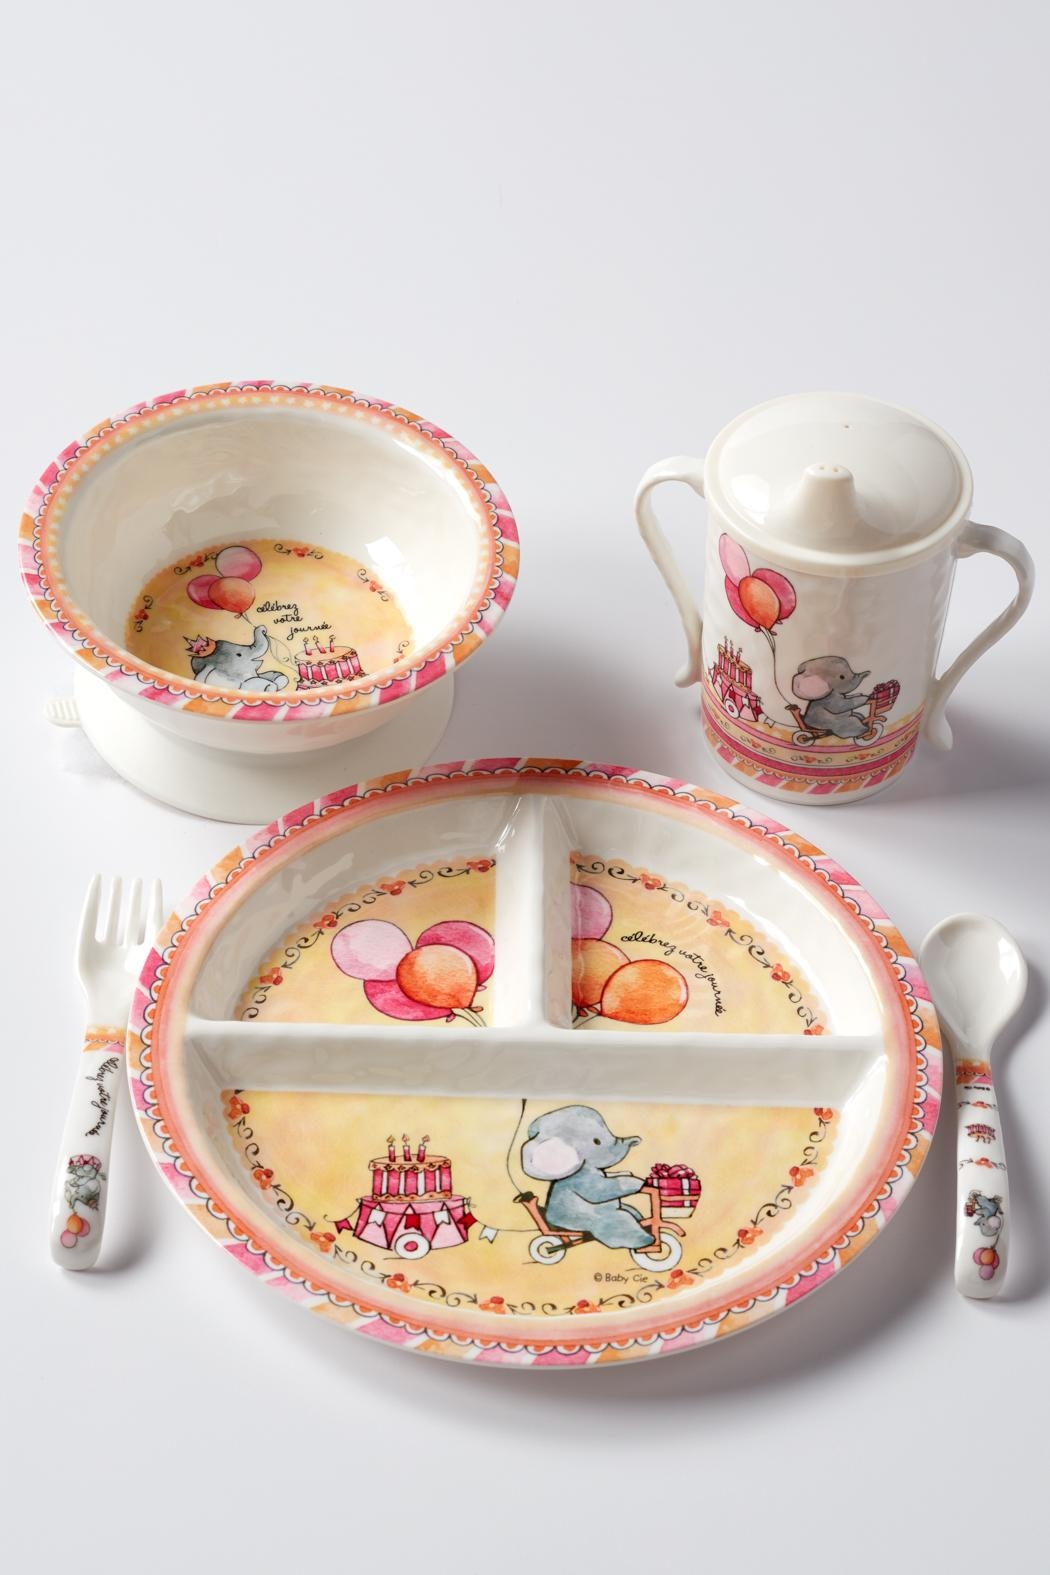 Baby Cie Childrenu0027s Plate Set - Front Cropped Image  sc 1 st  Shoptiques & Baby Cie Childrenu0027s Plate Set from North Carolina by Rollyu0027s Baby ...